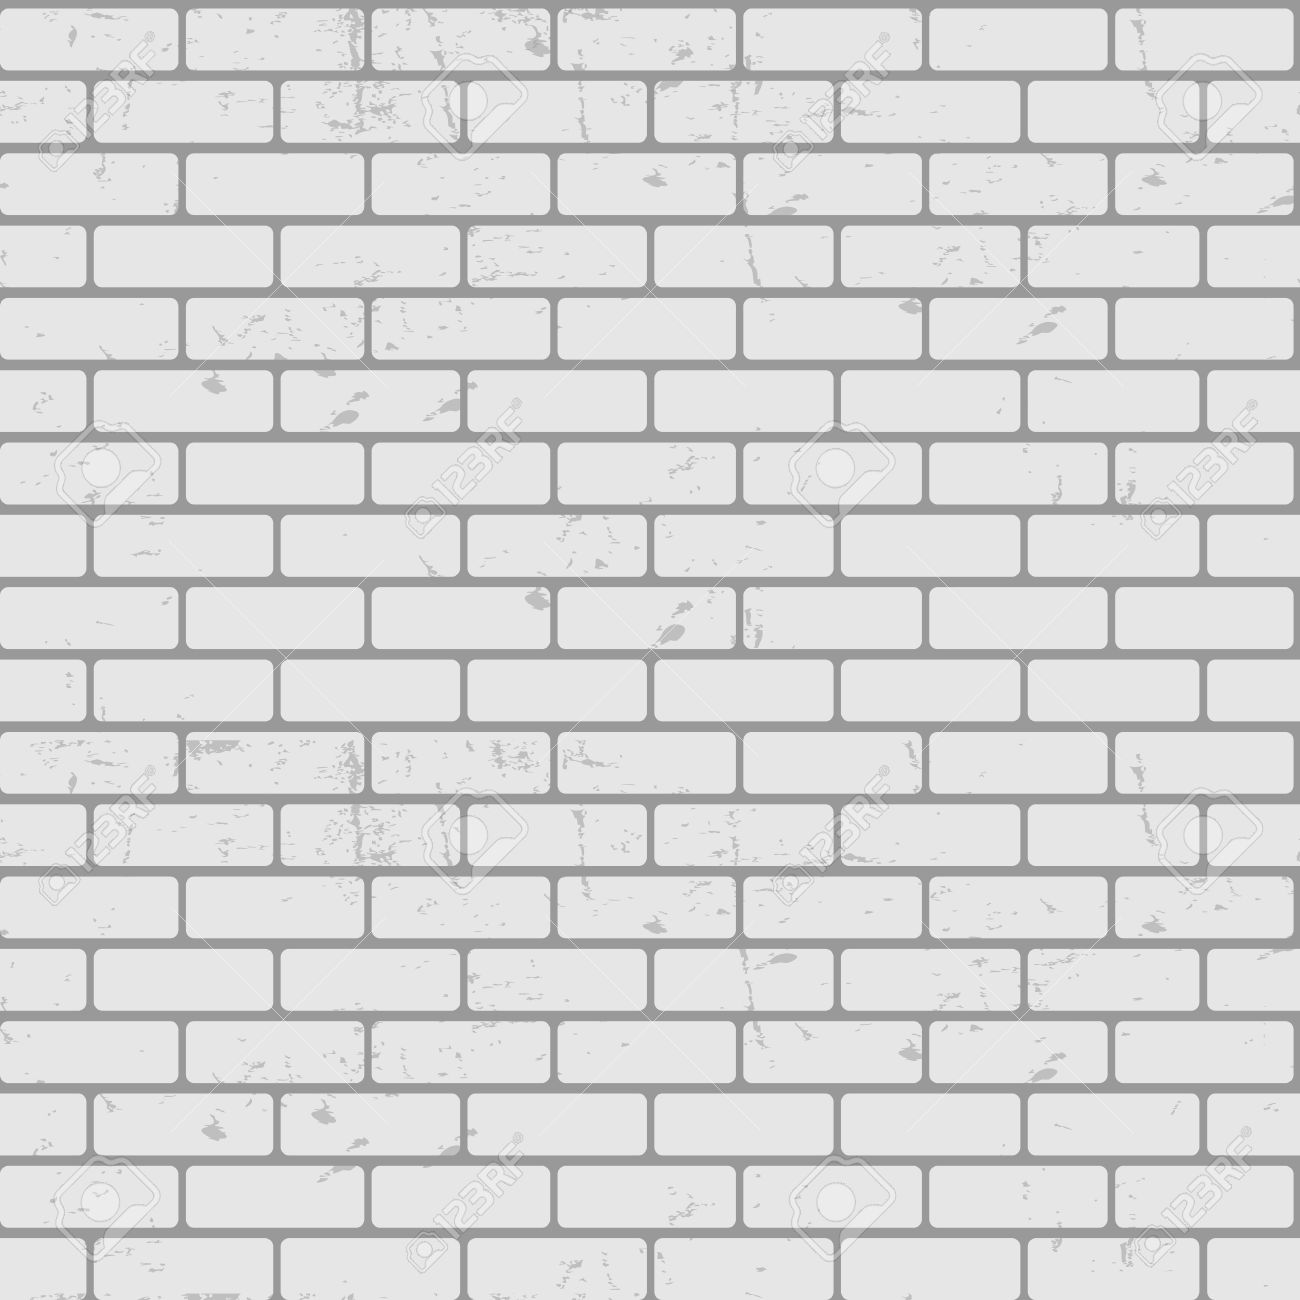 Background Of Brick Wall Texture Seamless Pattern Vector Illustration Stock